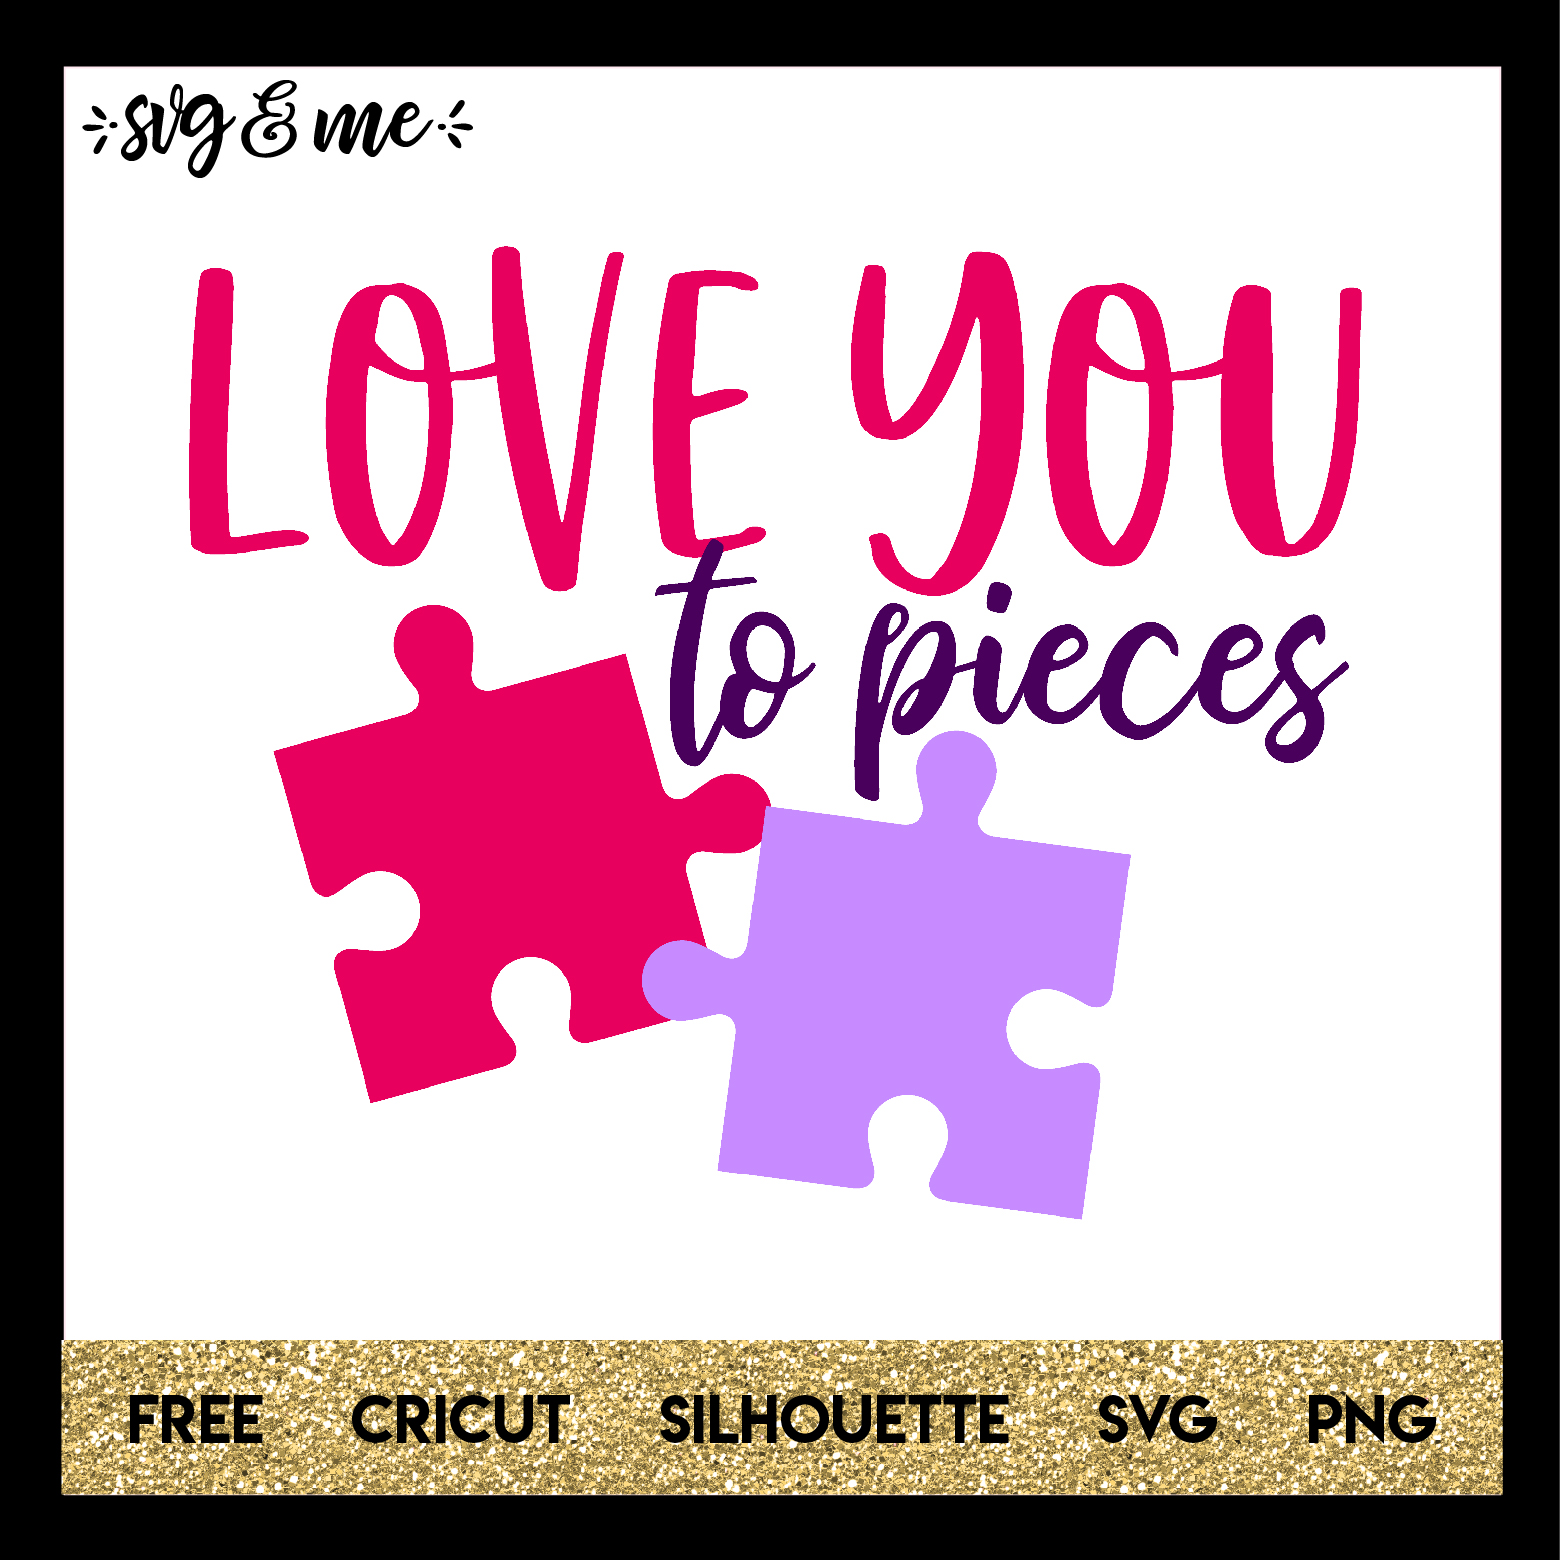 FREE SVG CUT FILE for Cricut, Silhouette and more - Love You to Pieces Valentine's Day SVG